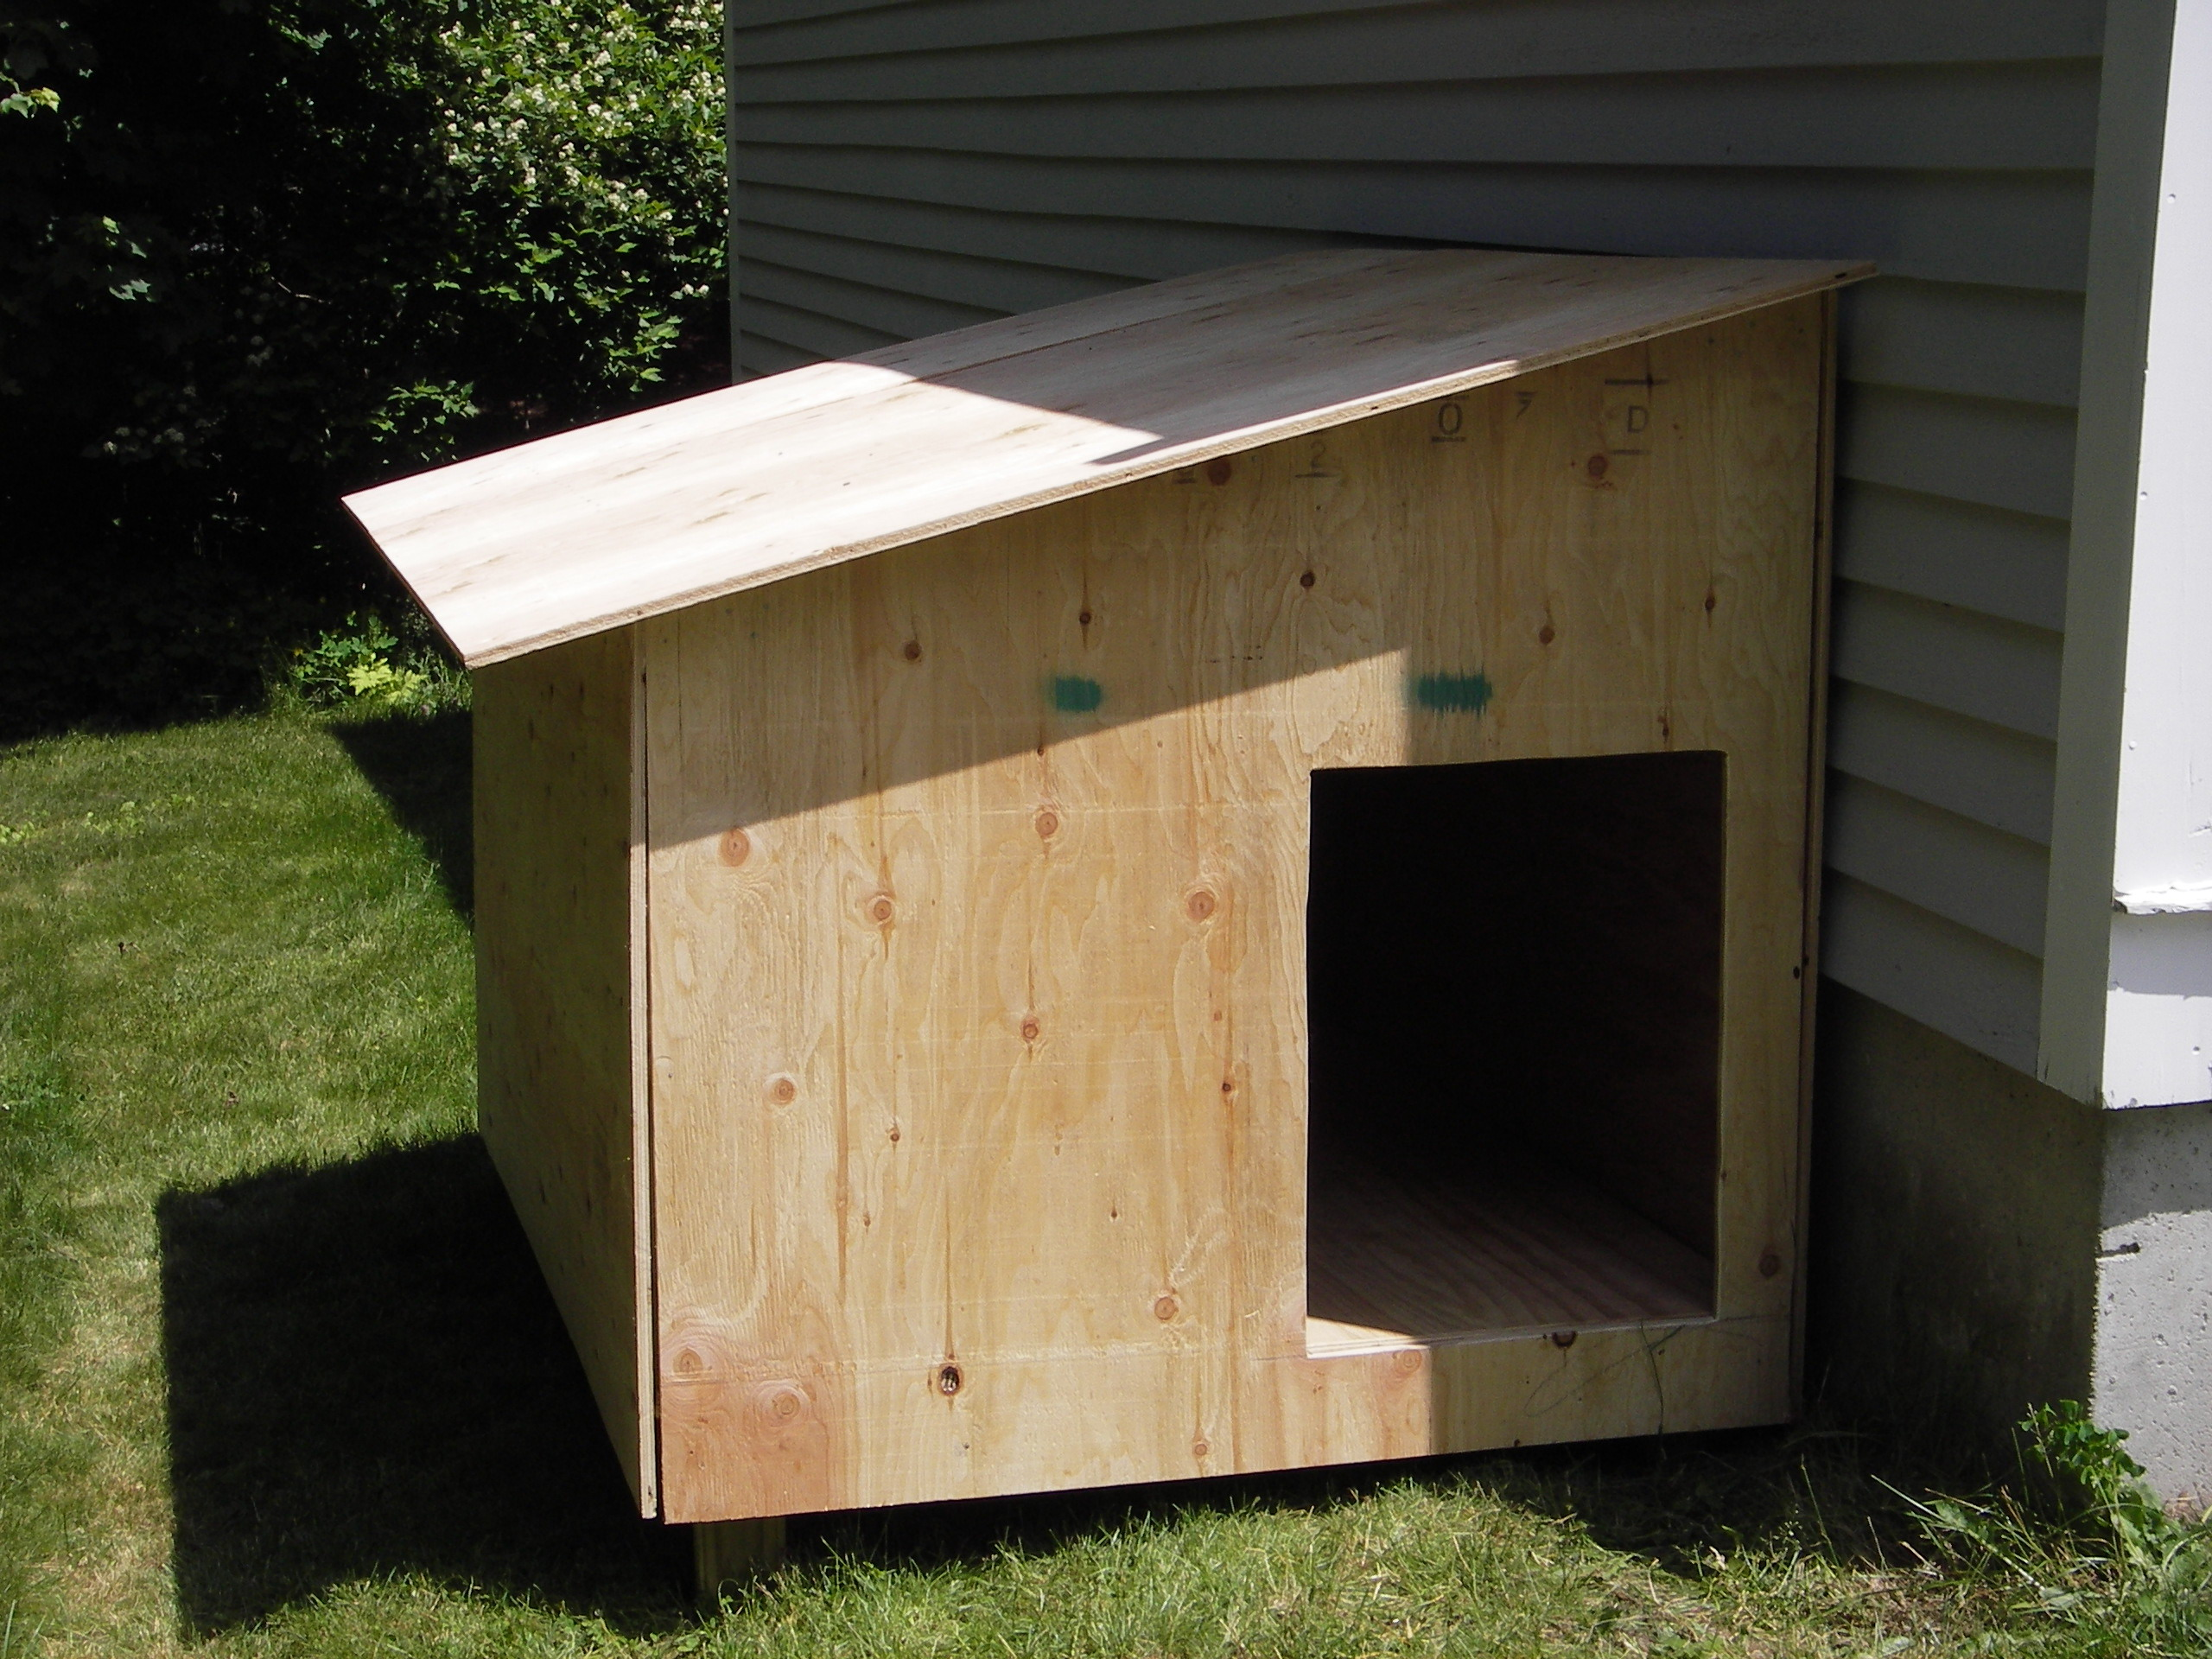 Home Design Ideas For Dogs: Dog House